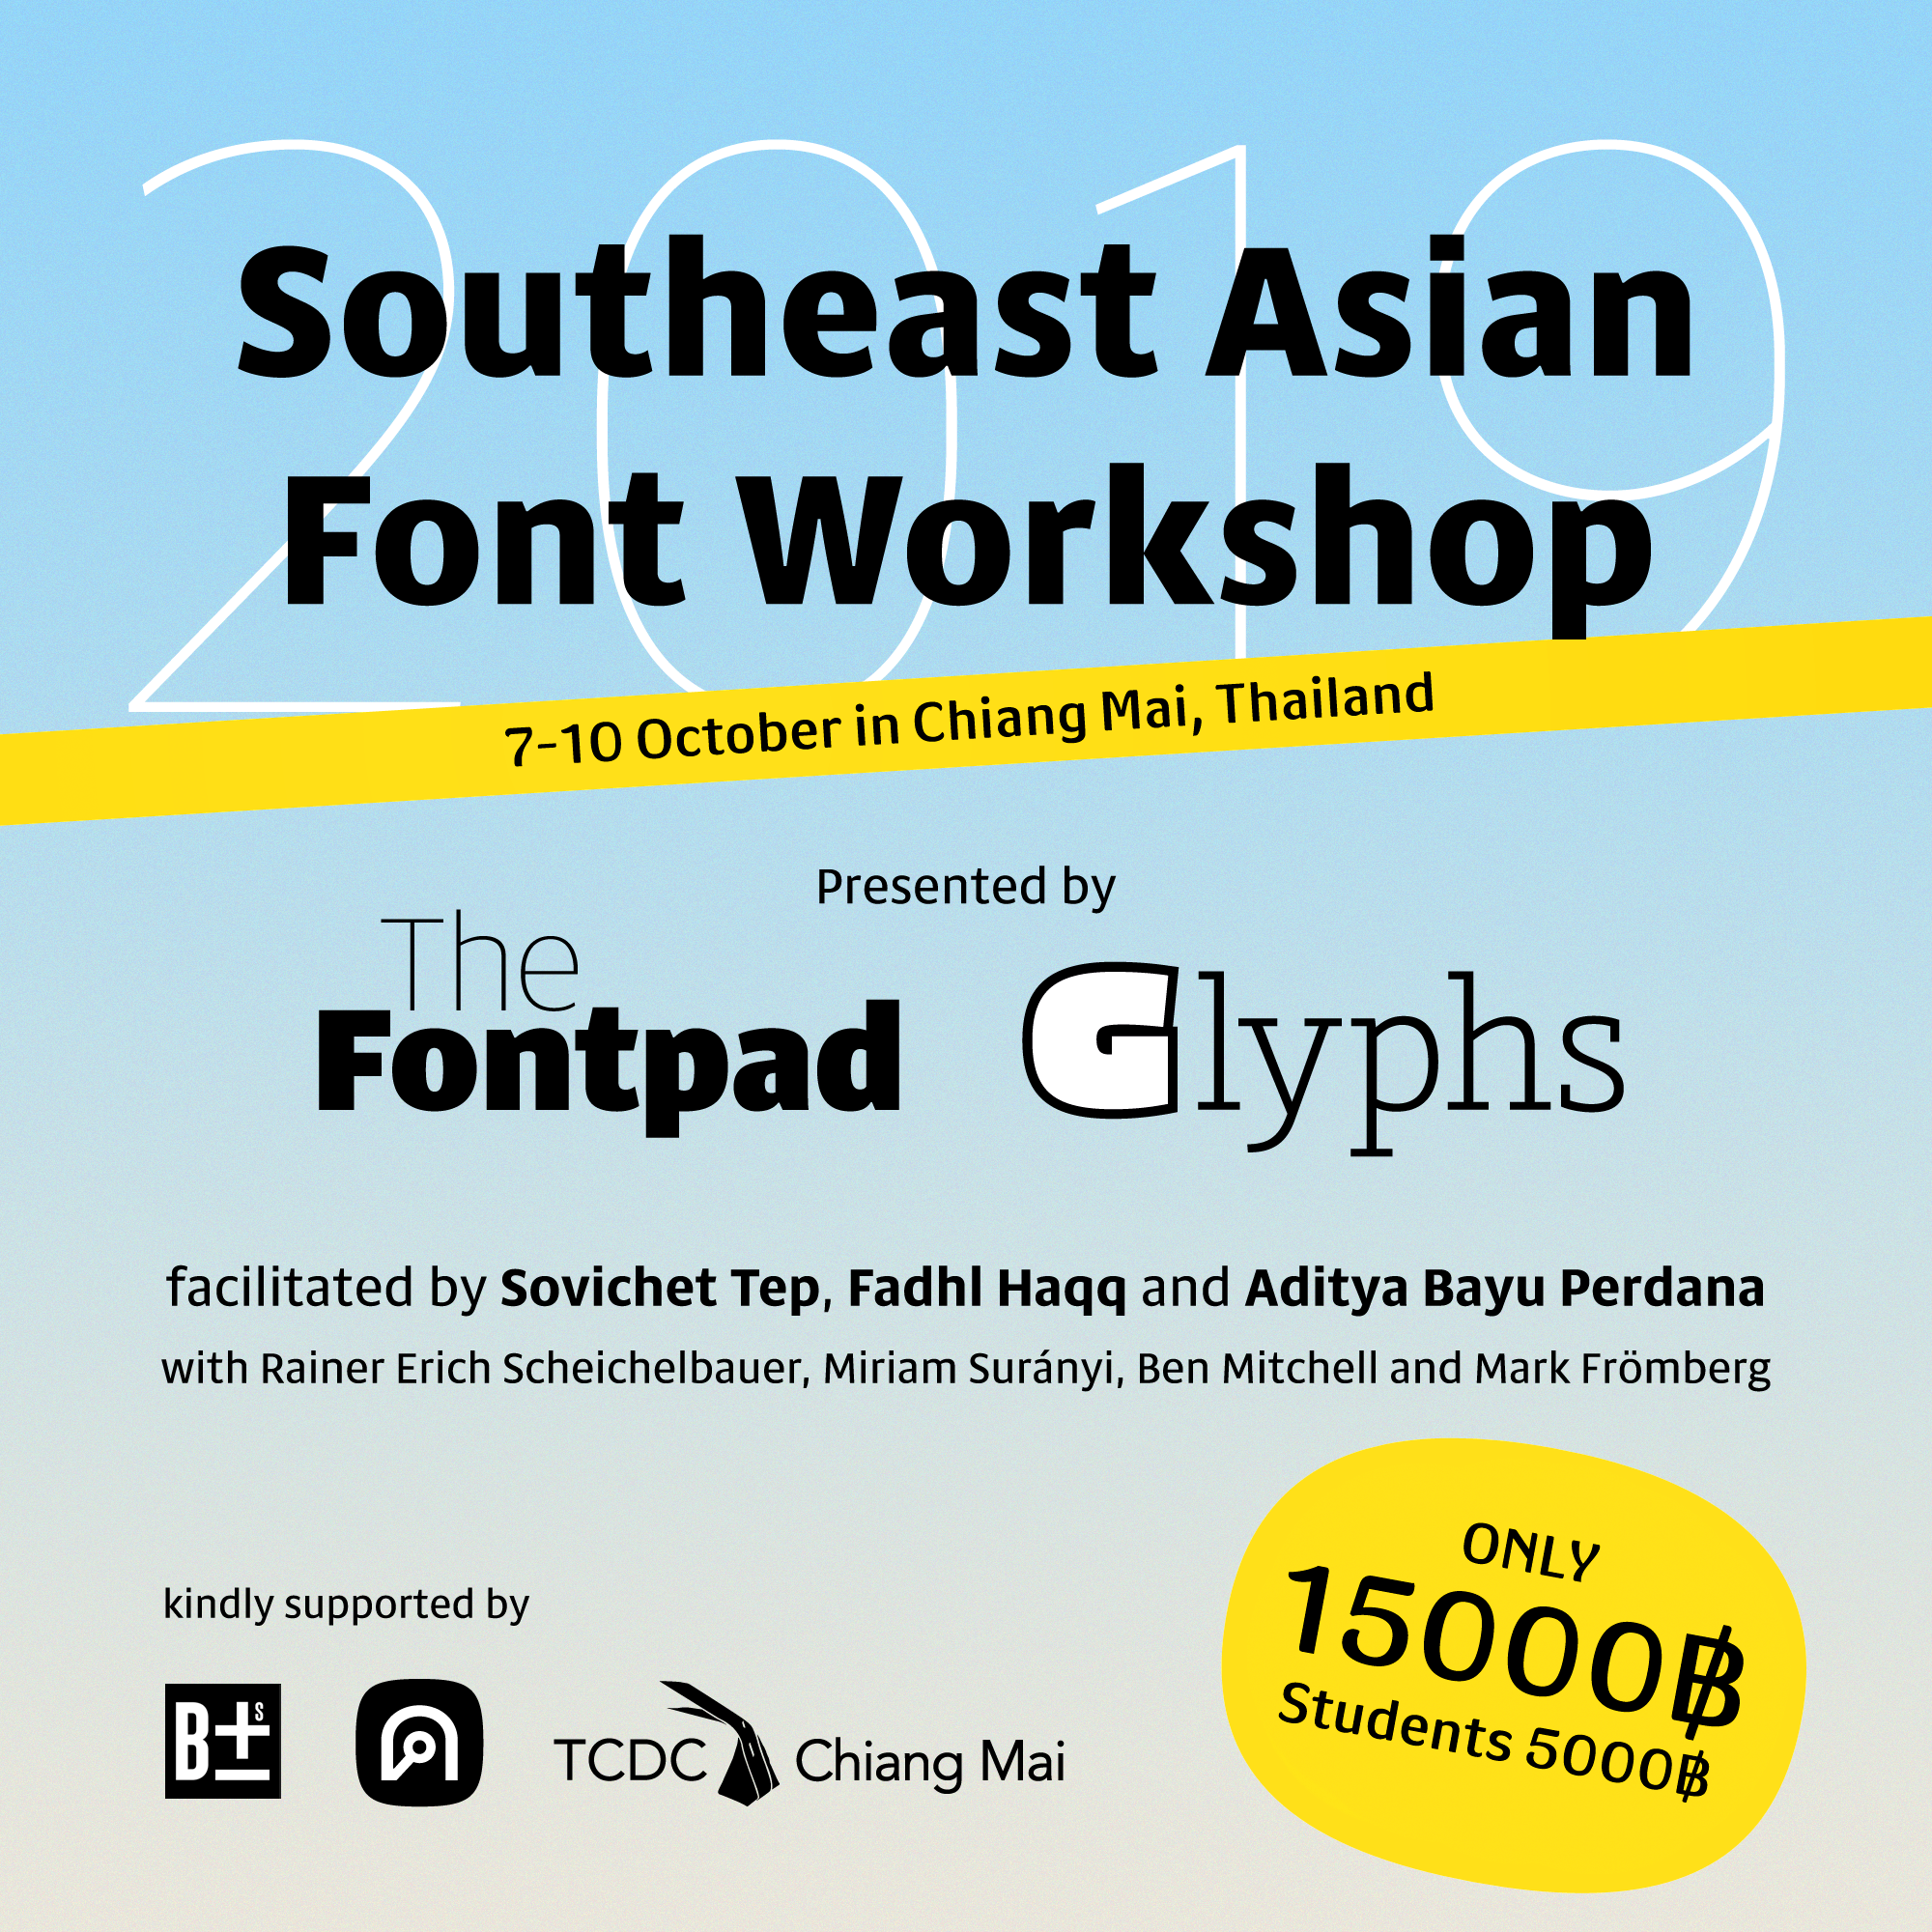 Southeast Asian Font Workshop 2019